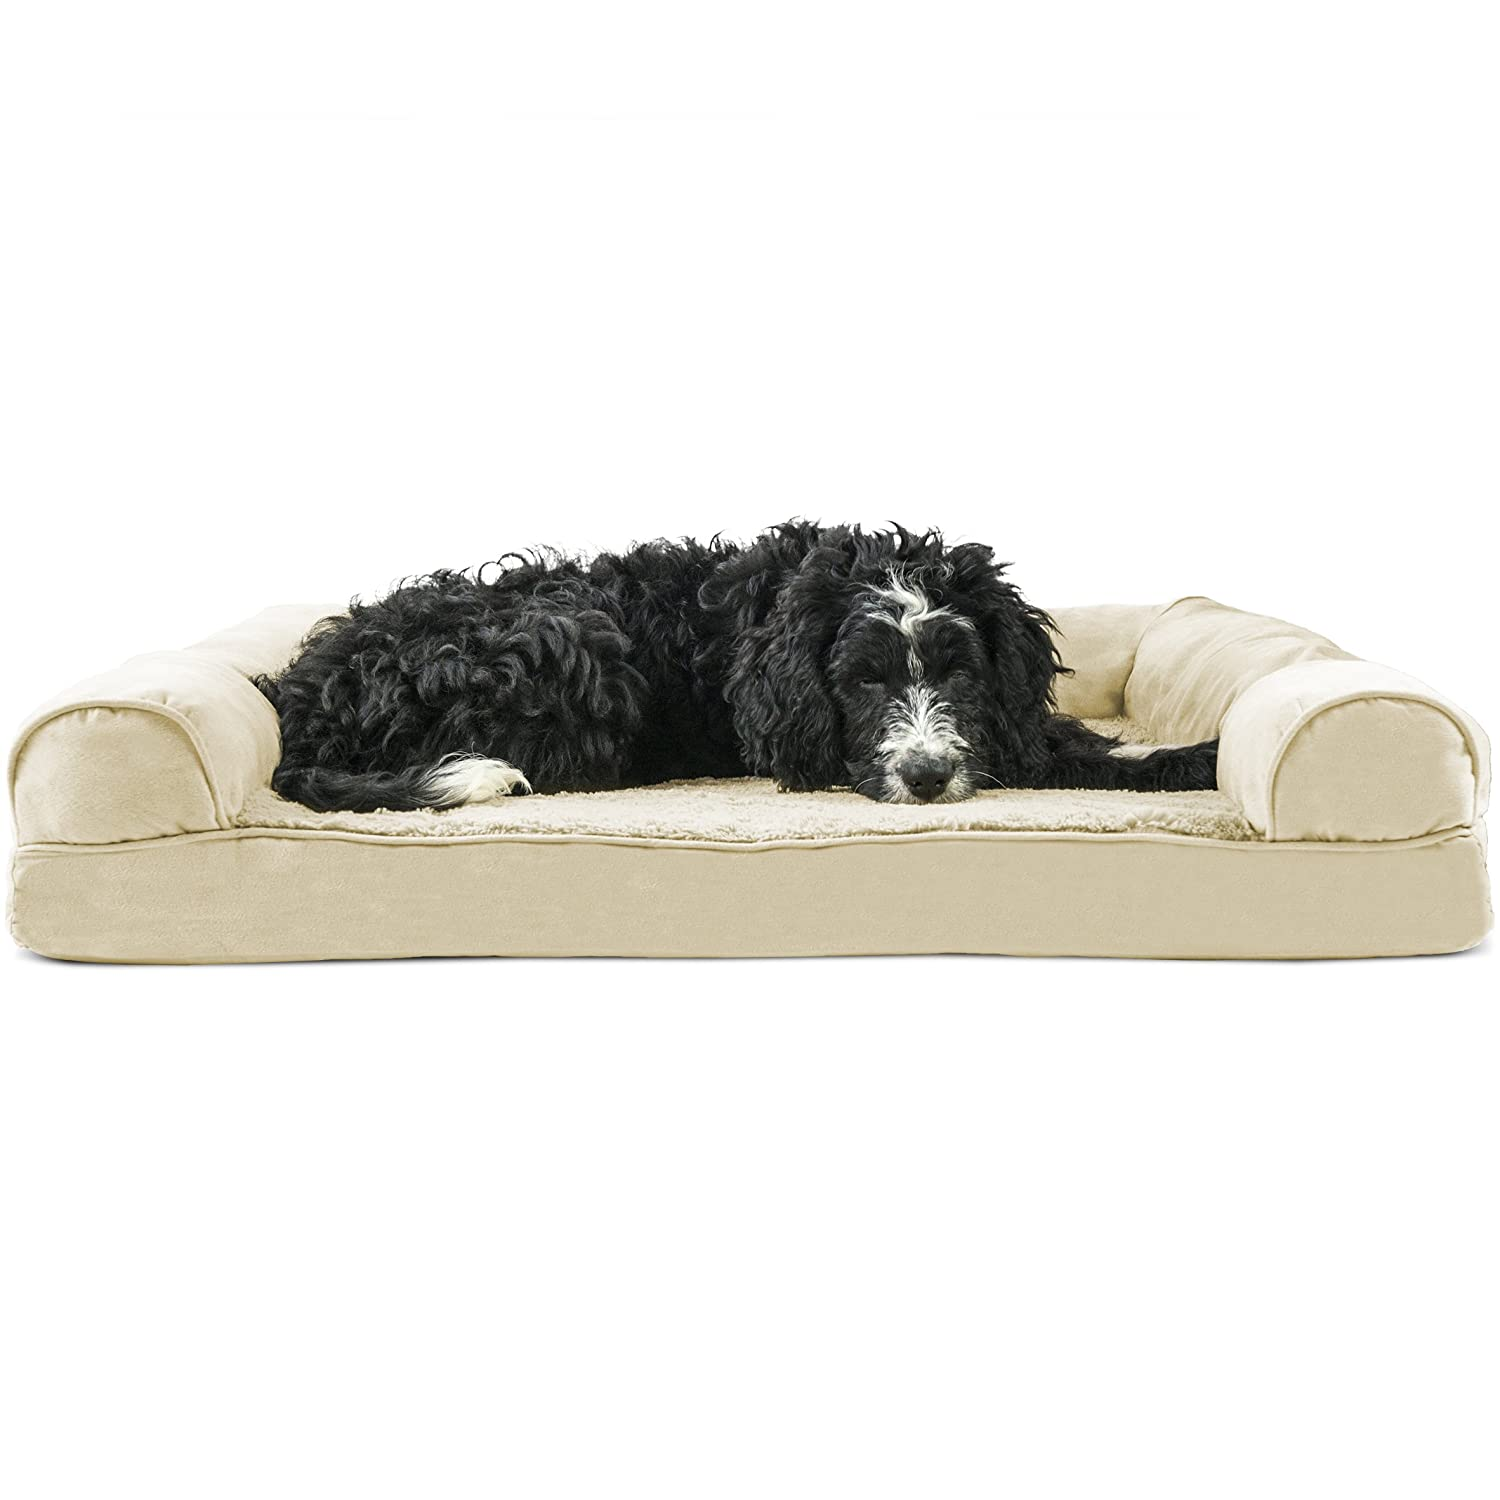 FurHaven Pet Dog Bed   Orthopedic Ultra Plush Sofa-Style Couch Pet Bed for Dogs & Cats, Clay, Large